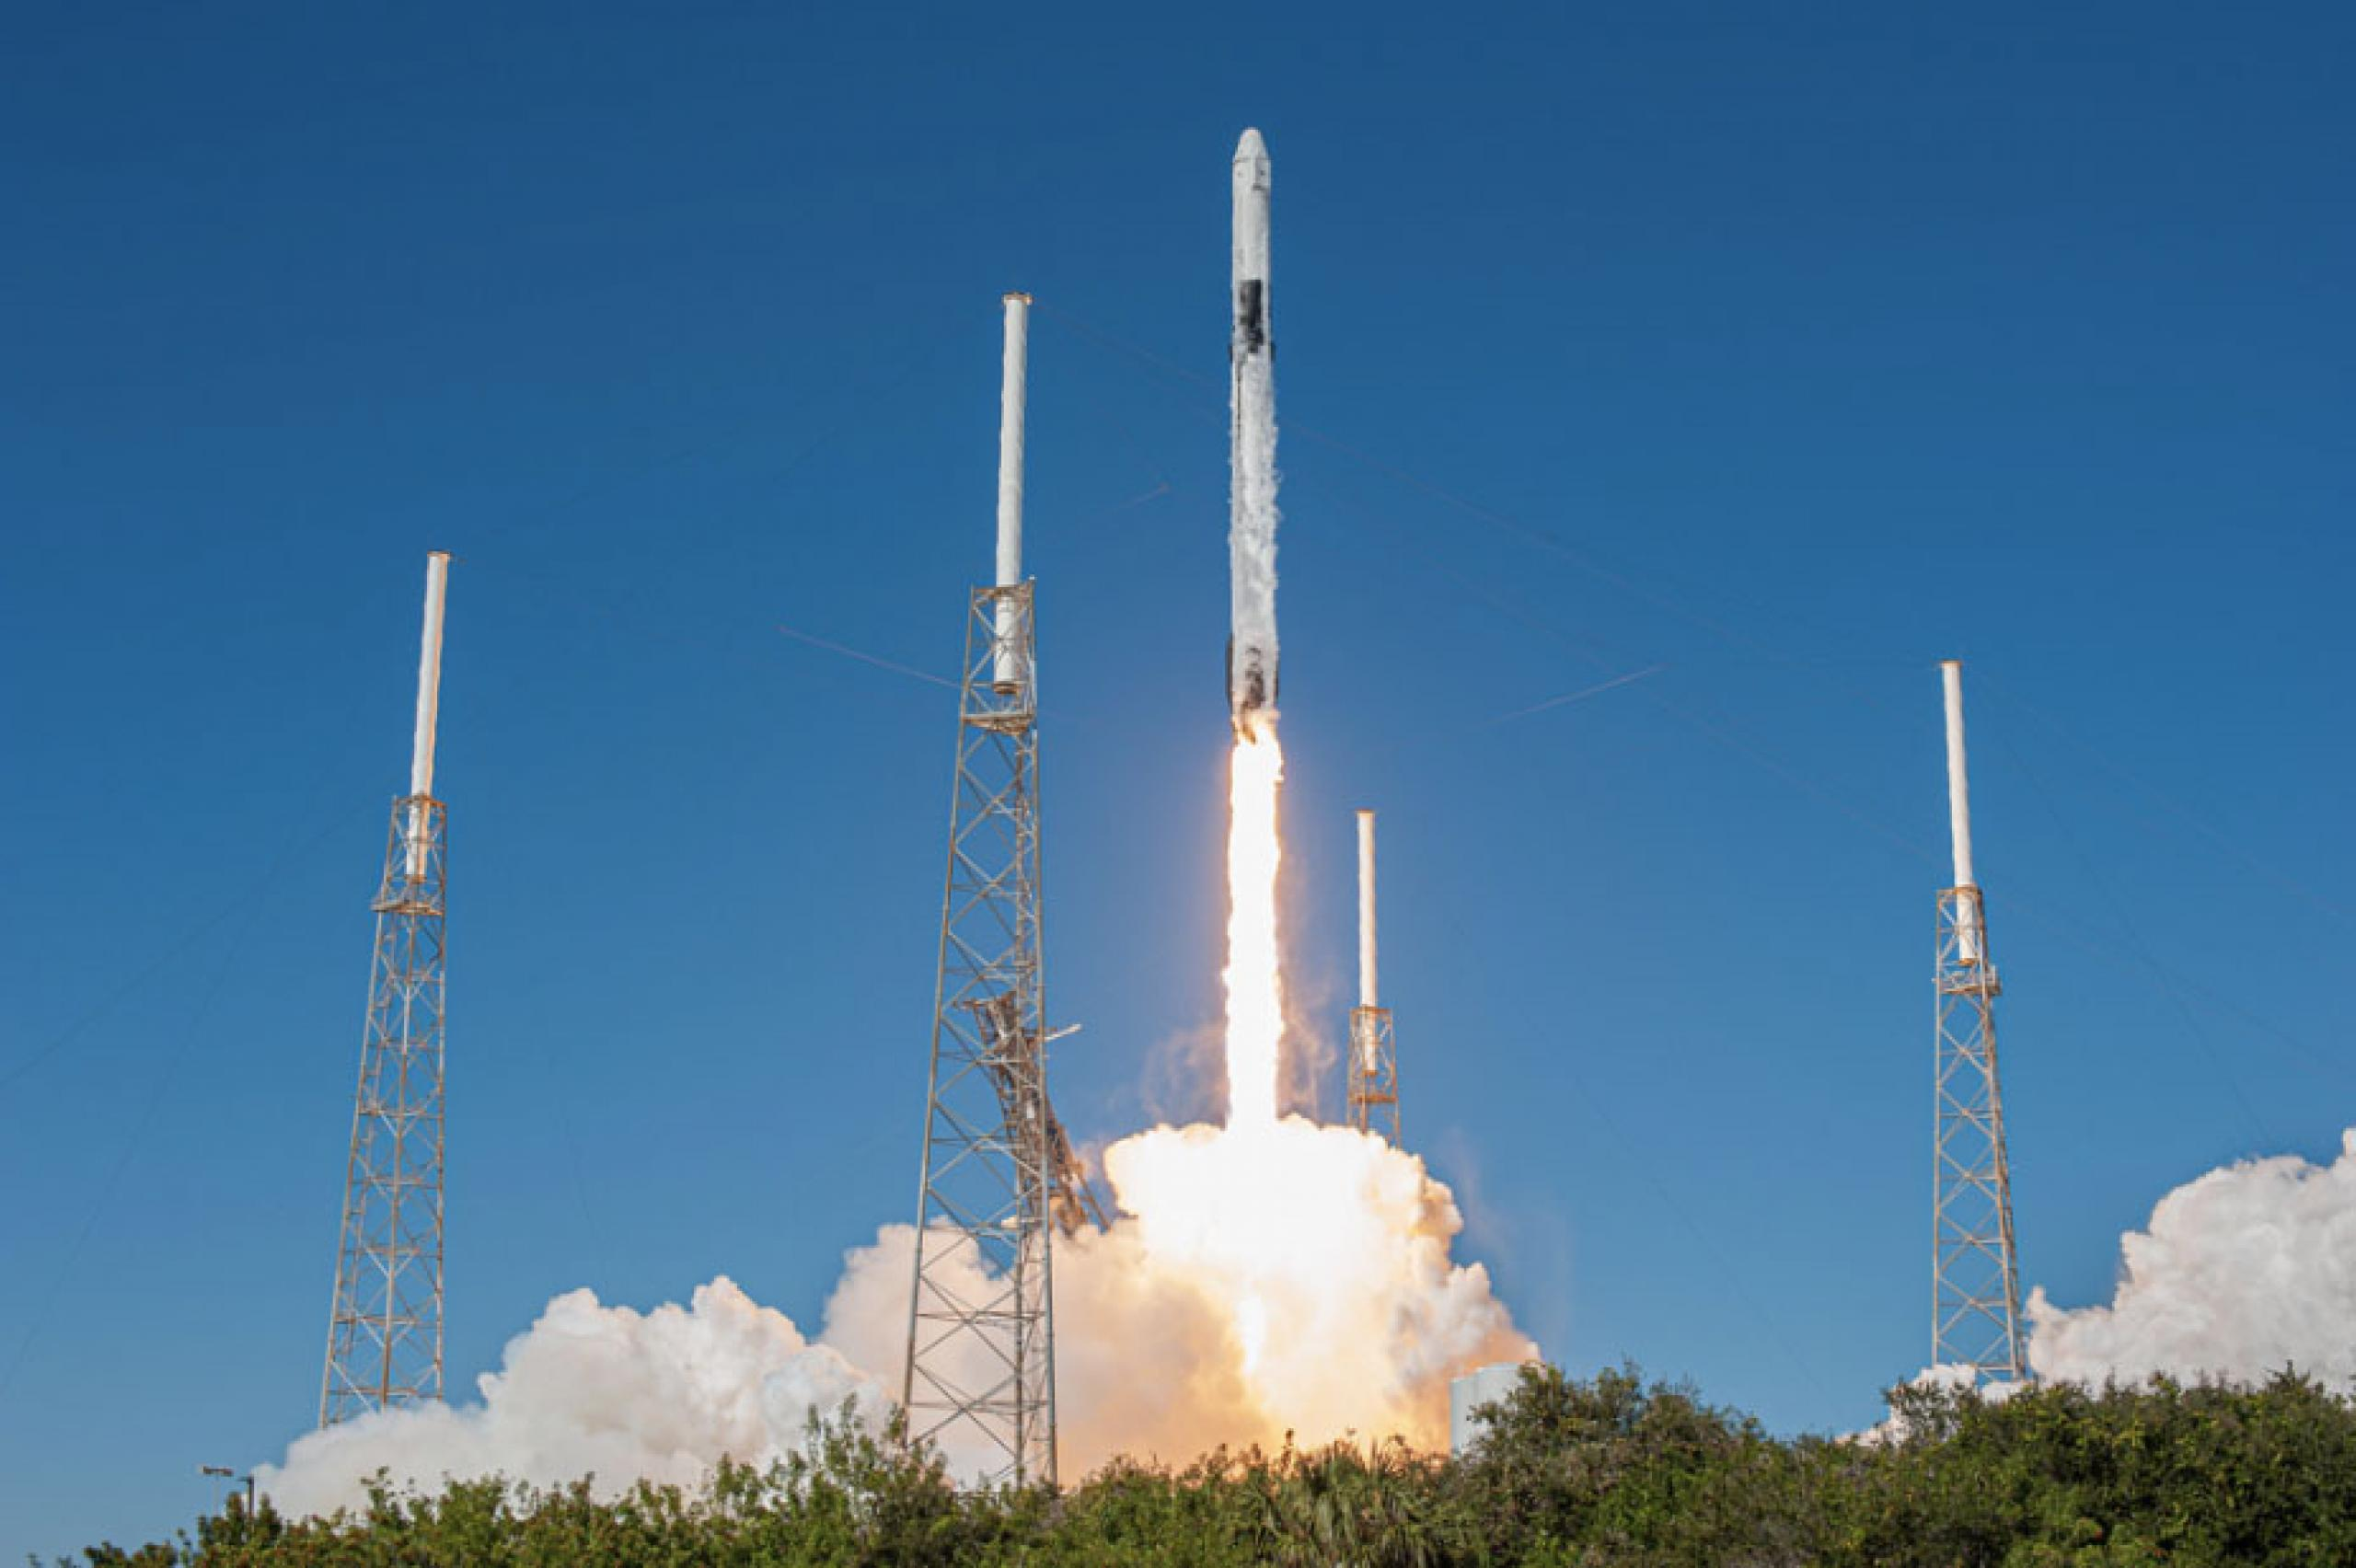 Photo of CIRiS taking off on a rocket in Cape Canaveral